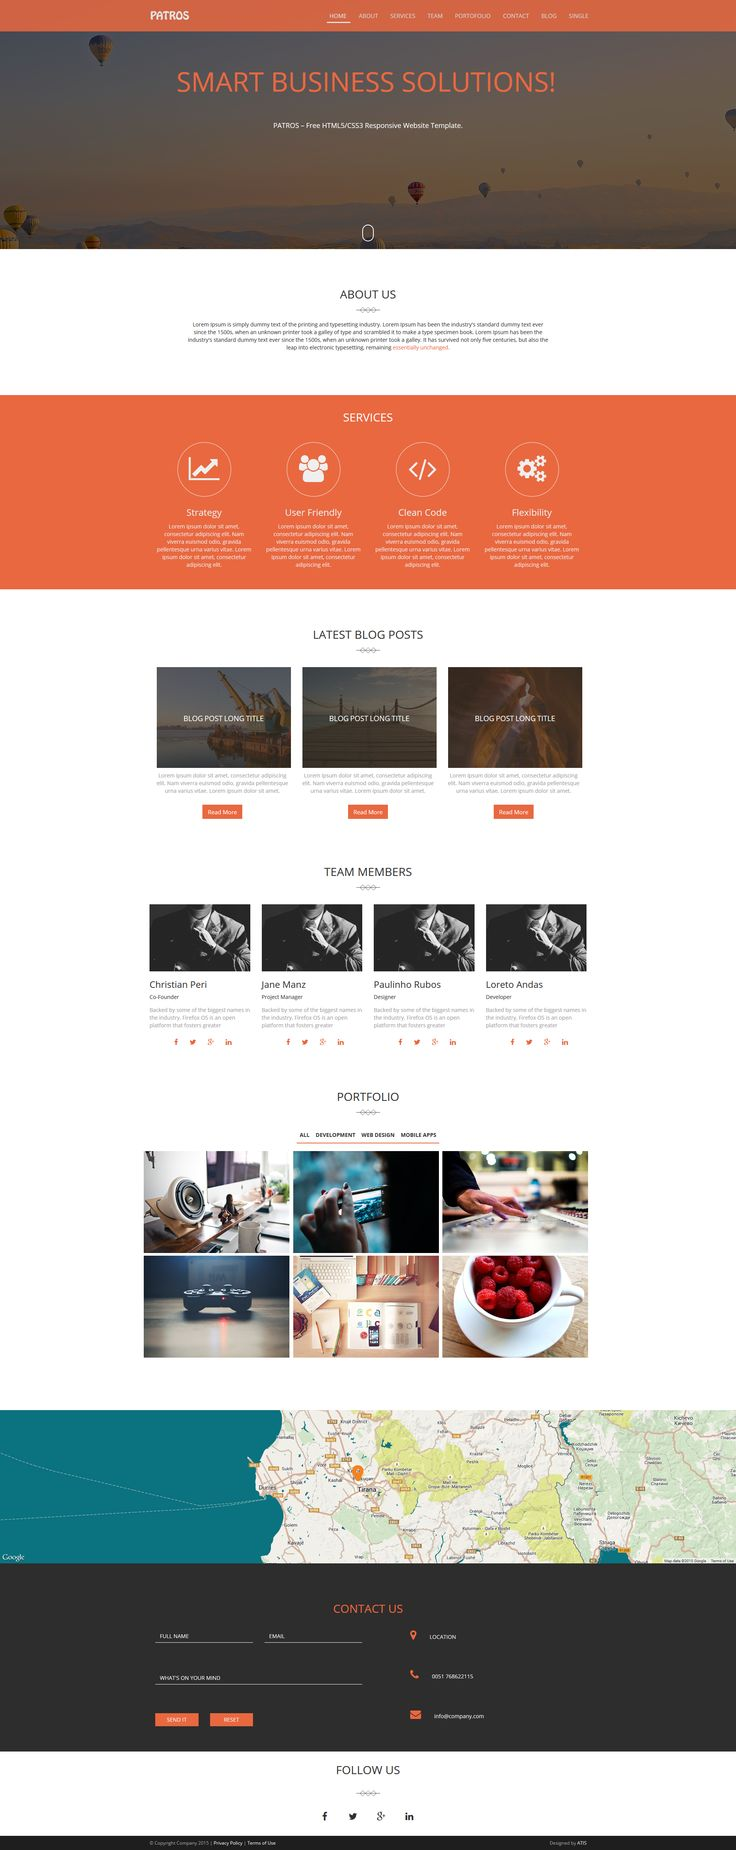 html5 wireframe template - patros free html5 css3 responsive website template